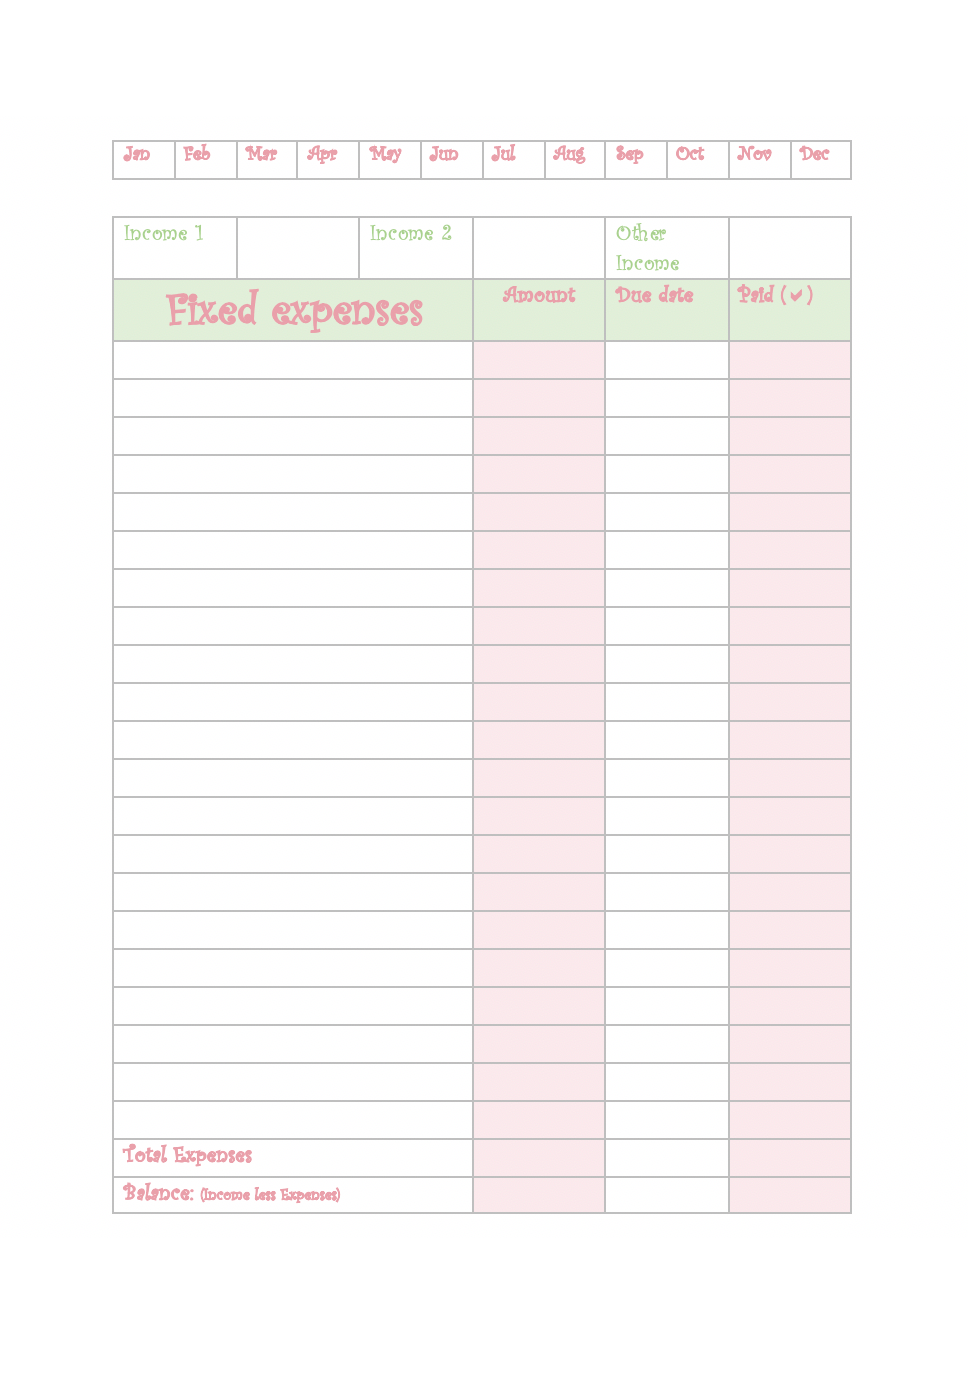 Fixed expenses budget planner printable